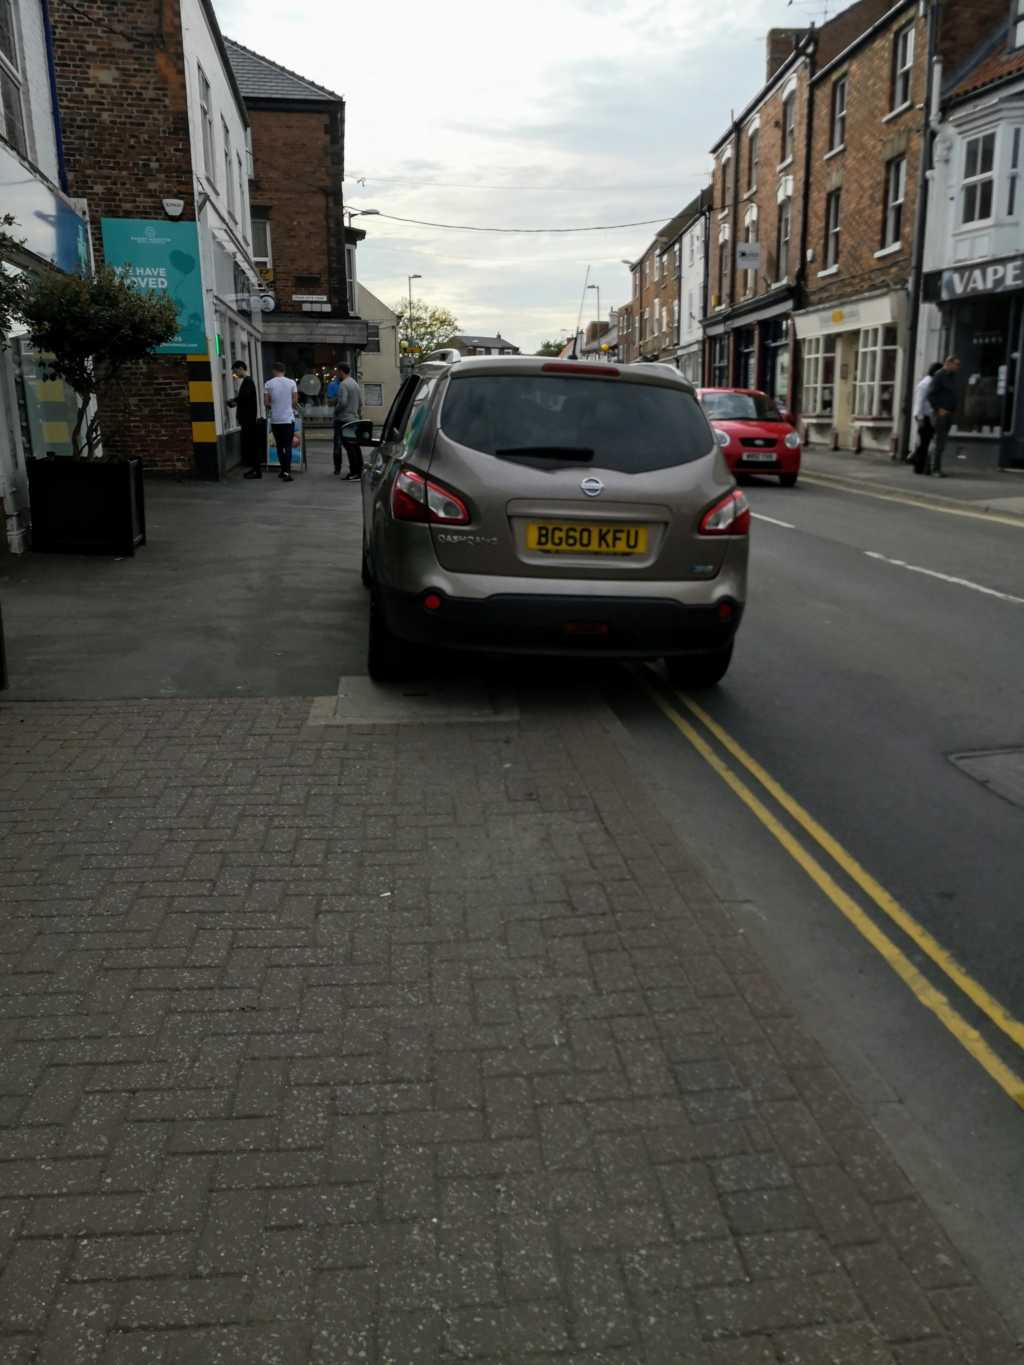 BG60 KFU displaying Selfish Parking